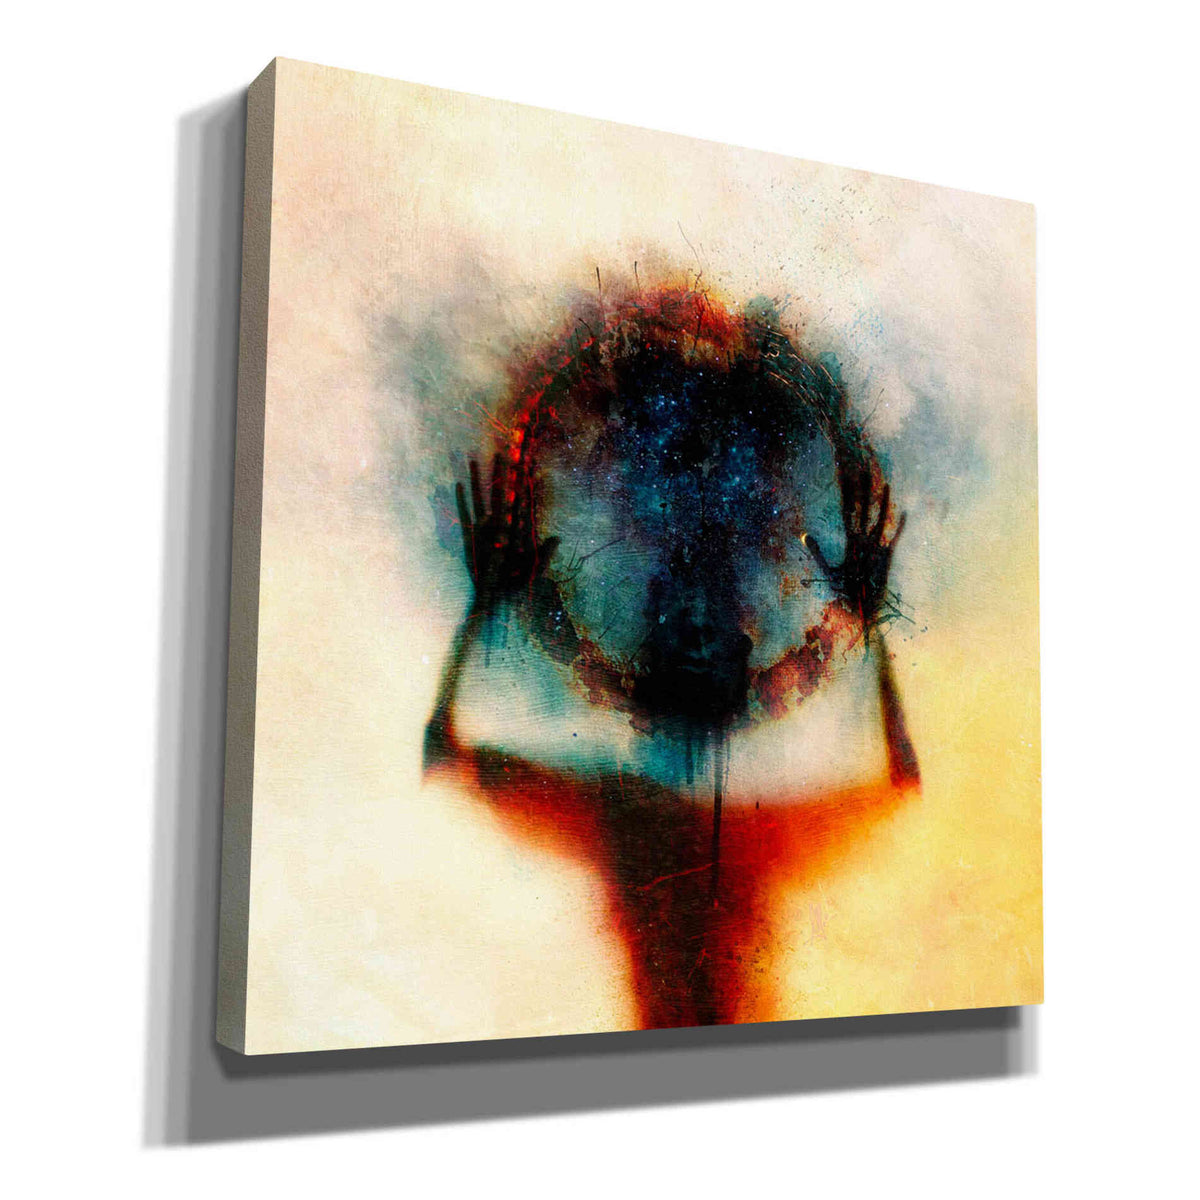 Cortesi Home 'Closer' by Mario Sanchez Nevado, Canvas Wall Art,Size 1 Square